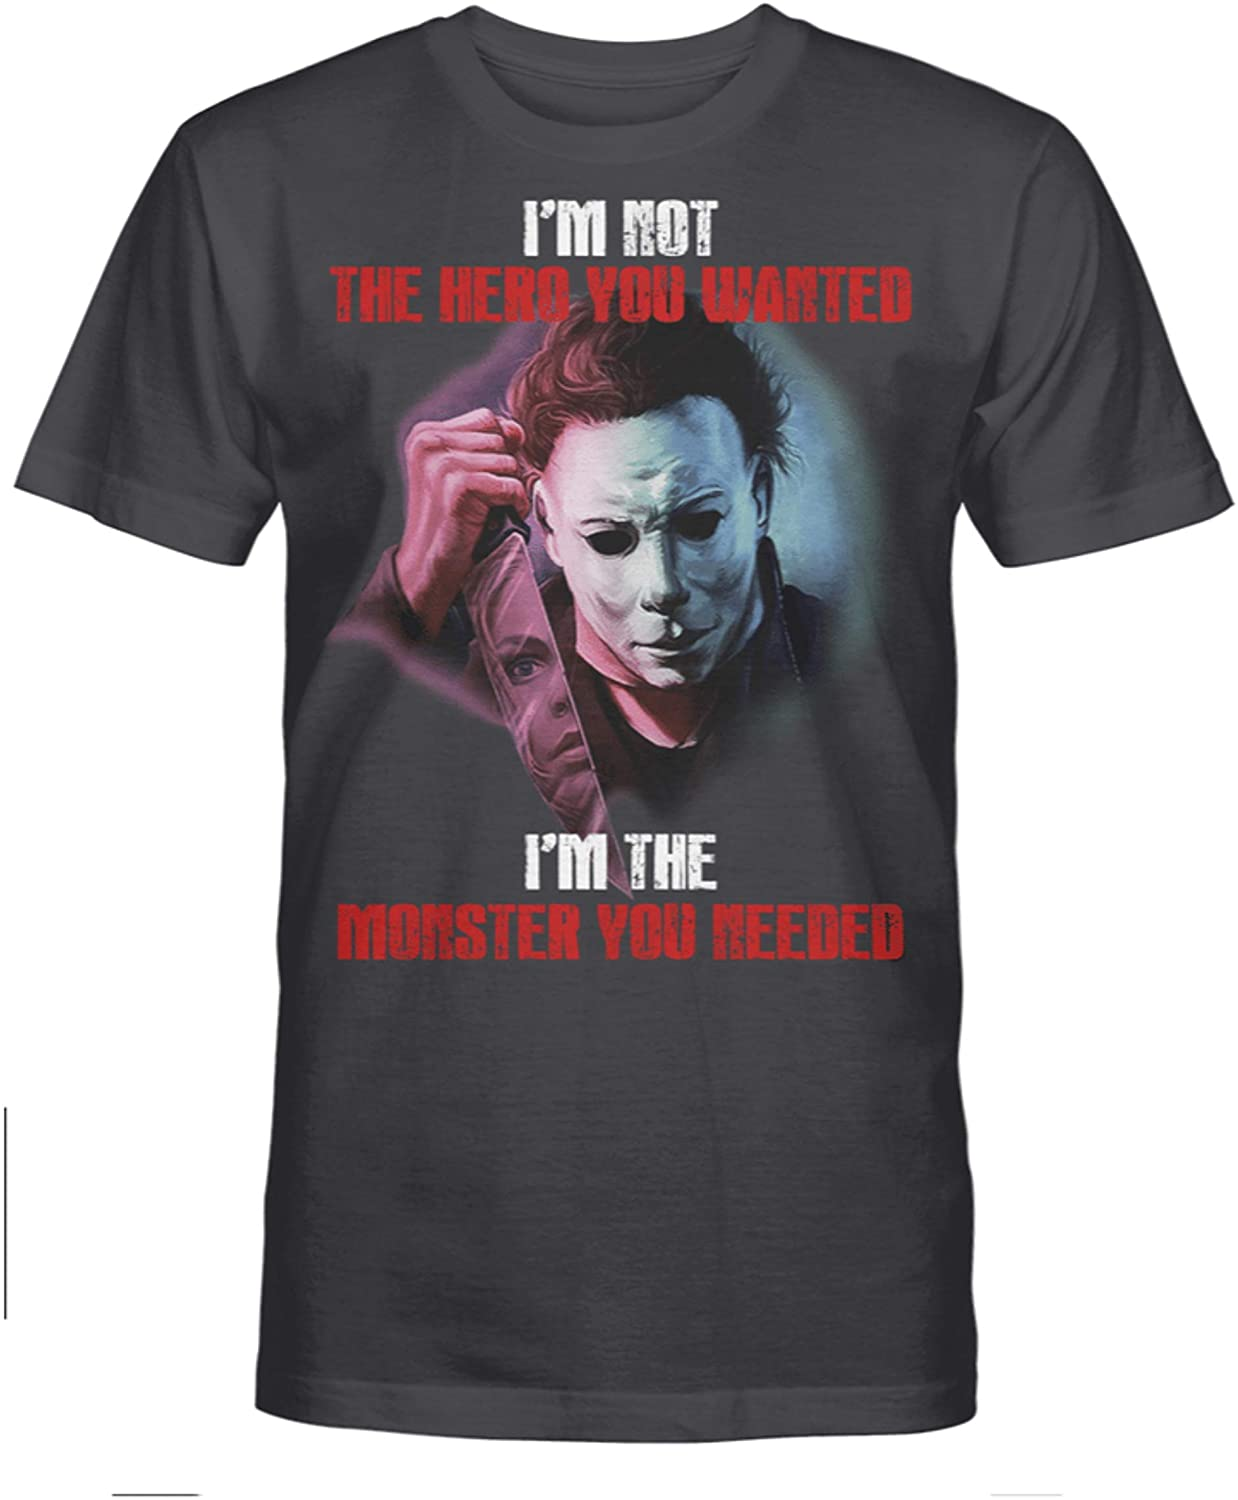 Halloween Horror Character Michael Myers I'm Not The Hero You Wanted Funny Perfect T-Shirt Gift for Fans